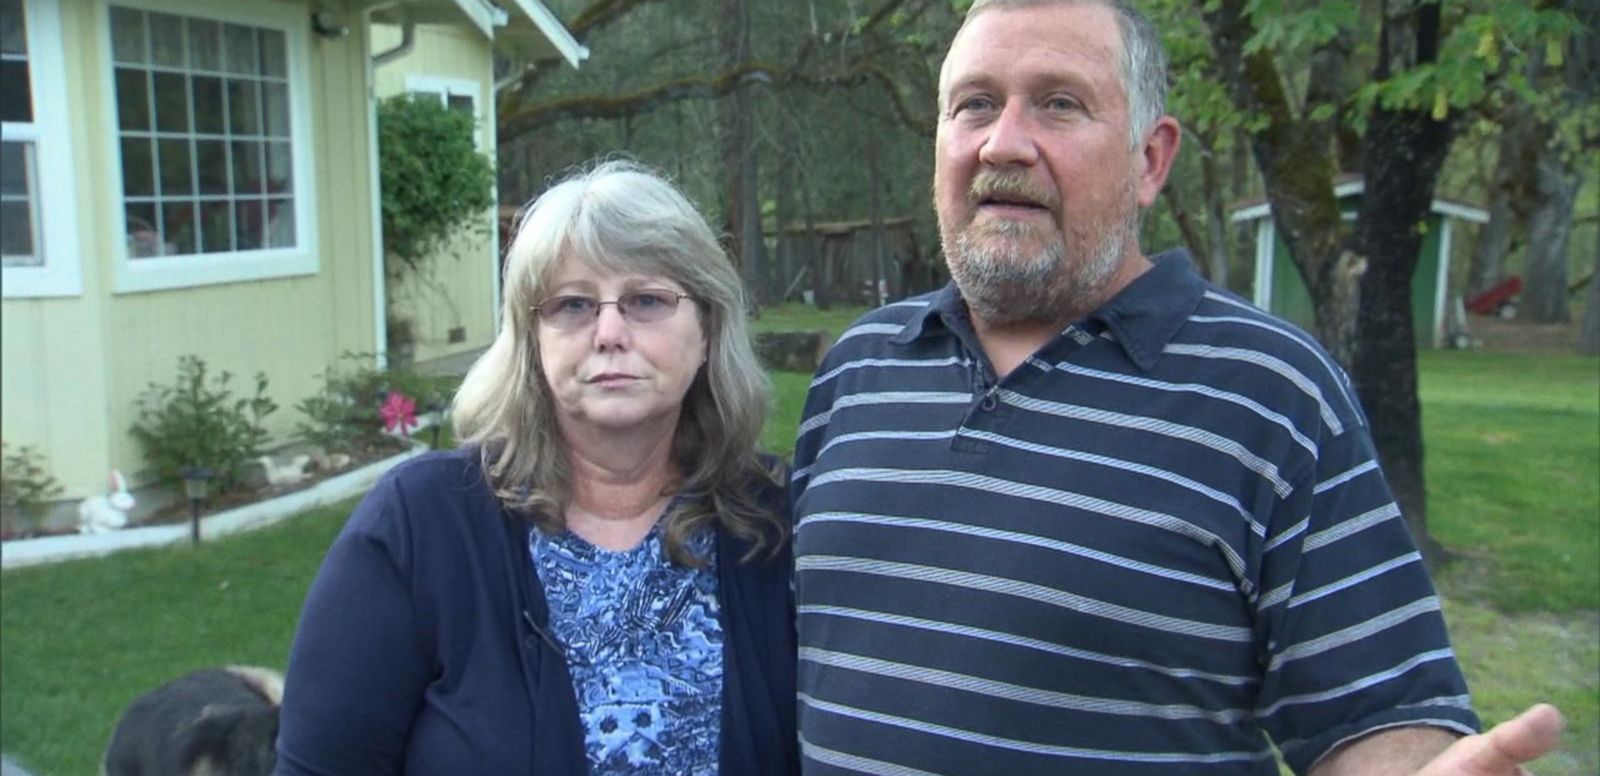 VIDEO: Couple Awarded Settlement After Decade of Dog's Barking